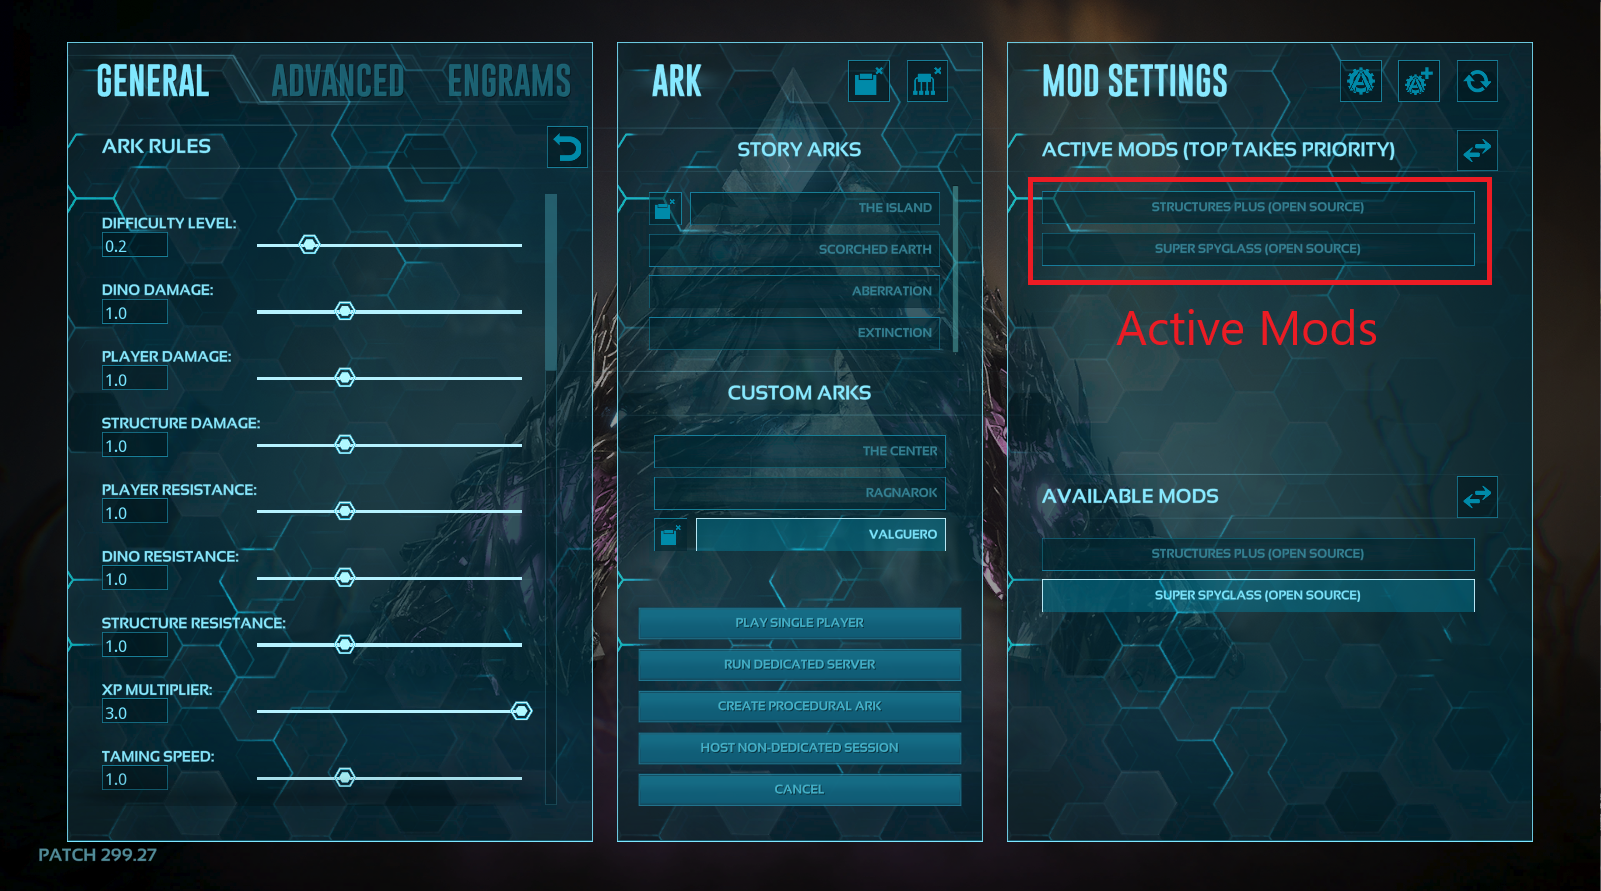 A view of the control panel for creating a single player game in ARK, showing enabled mods